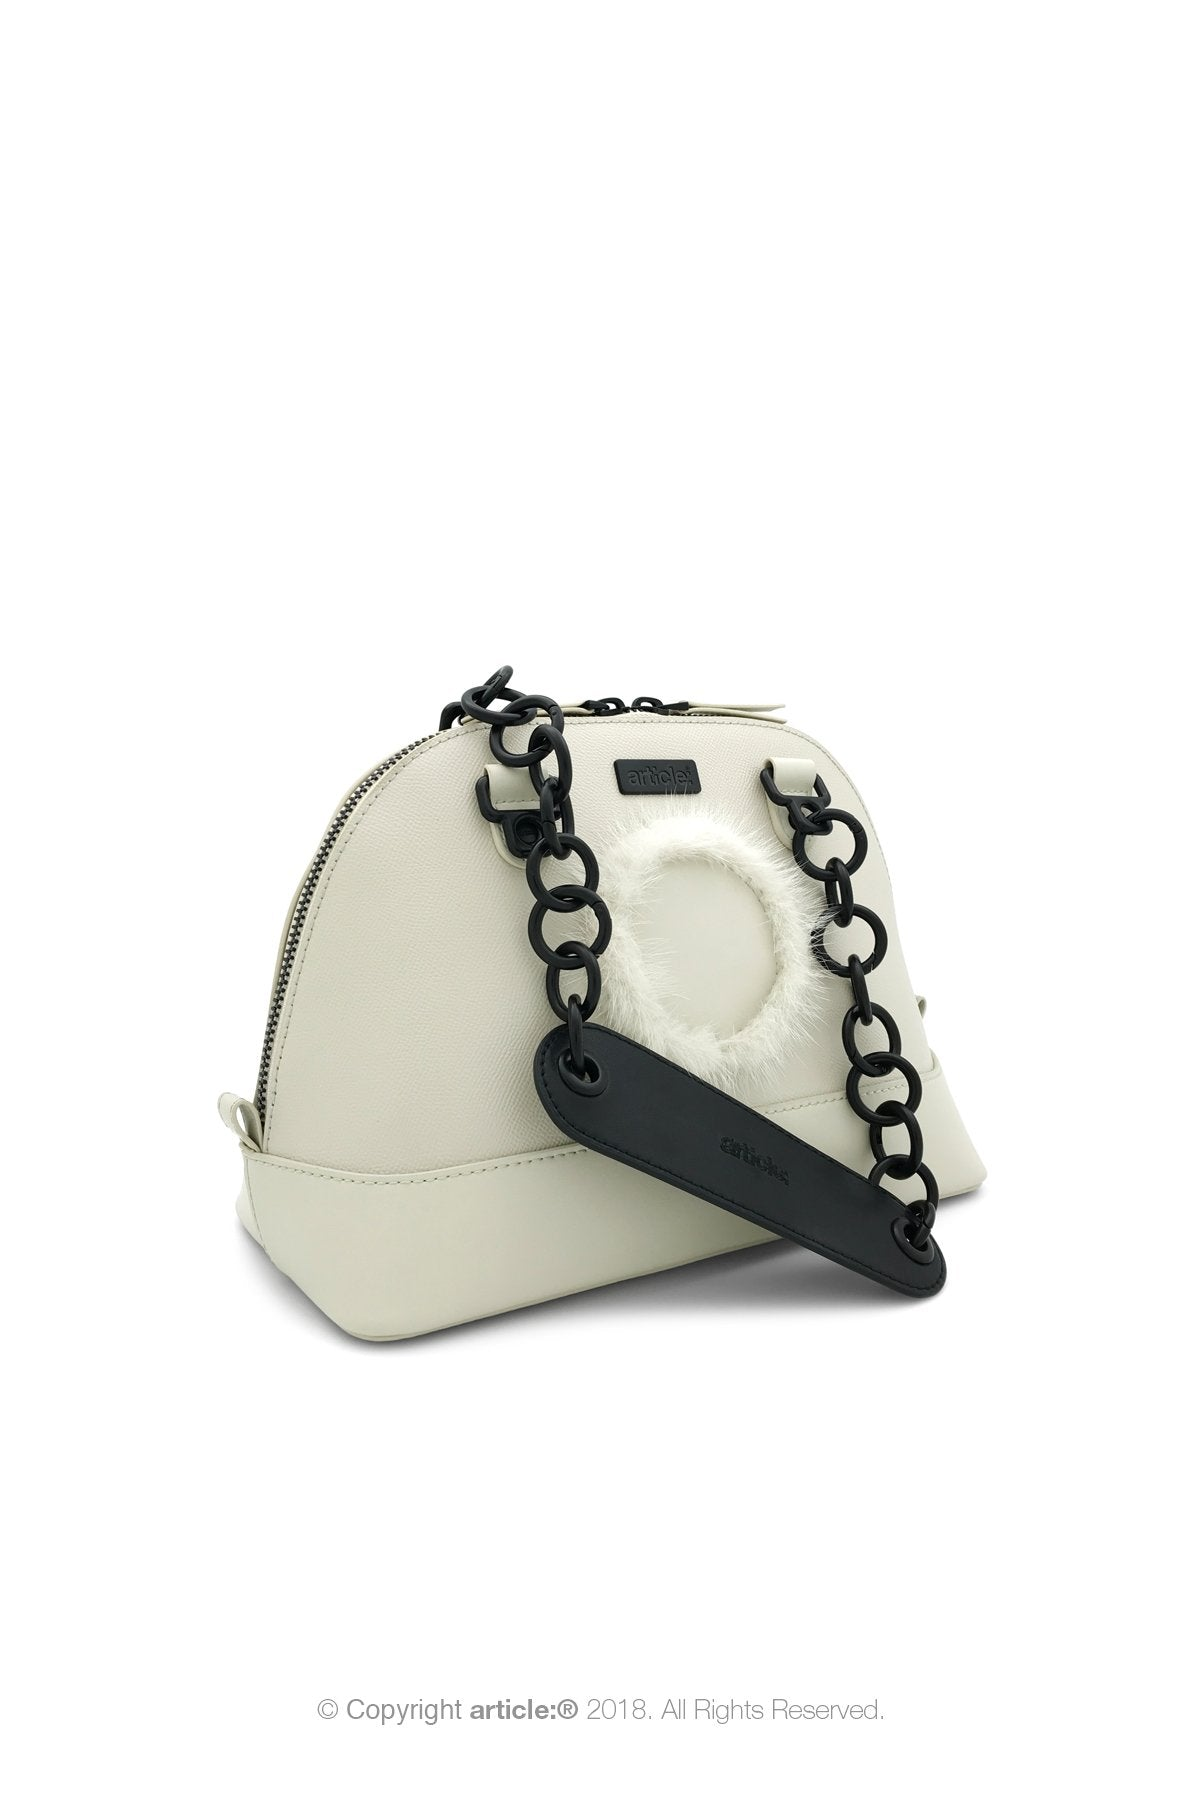 article: #140 Handbag Top Handle - Oyster